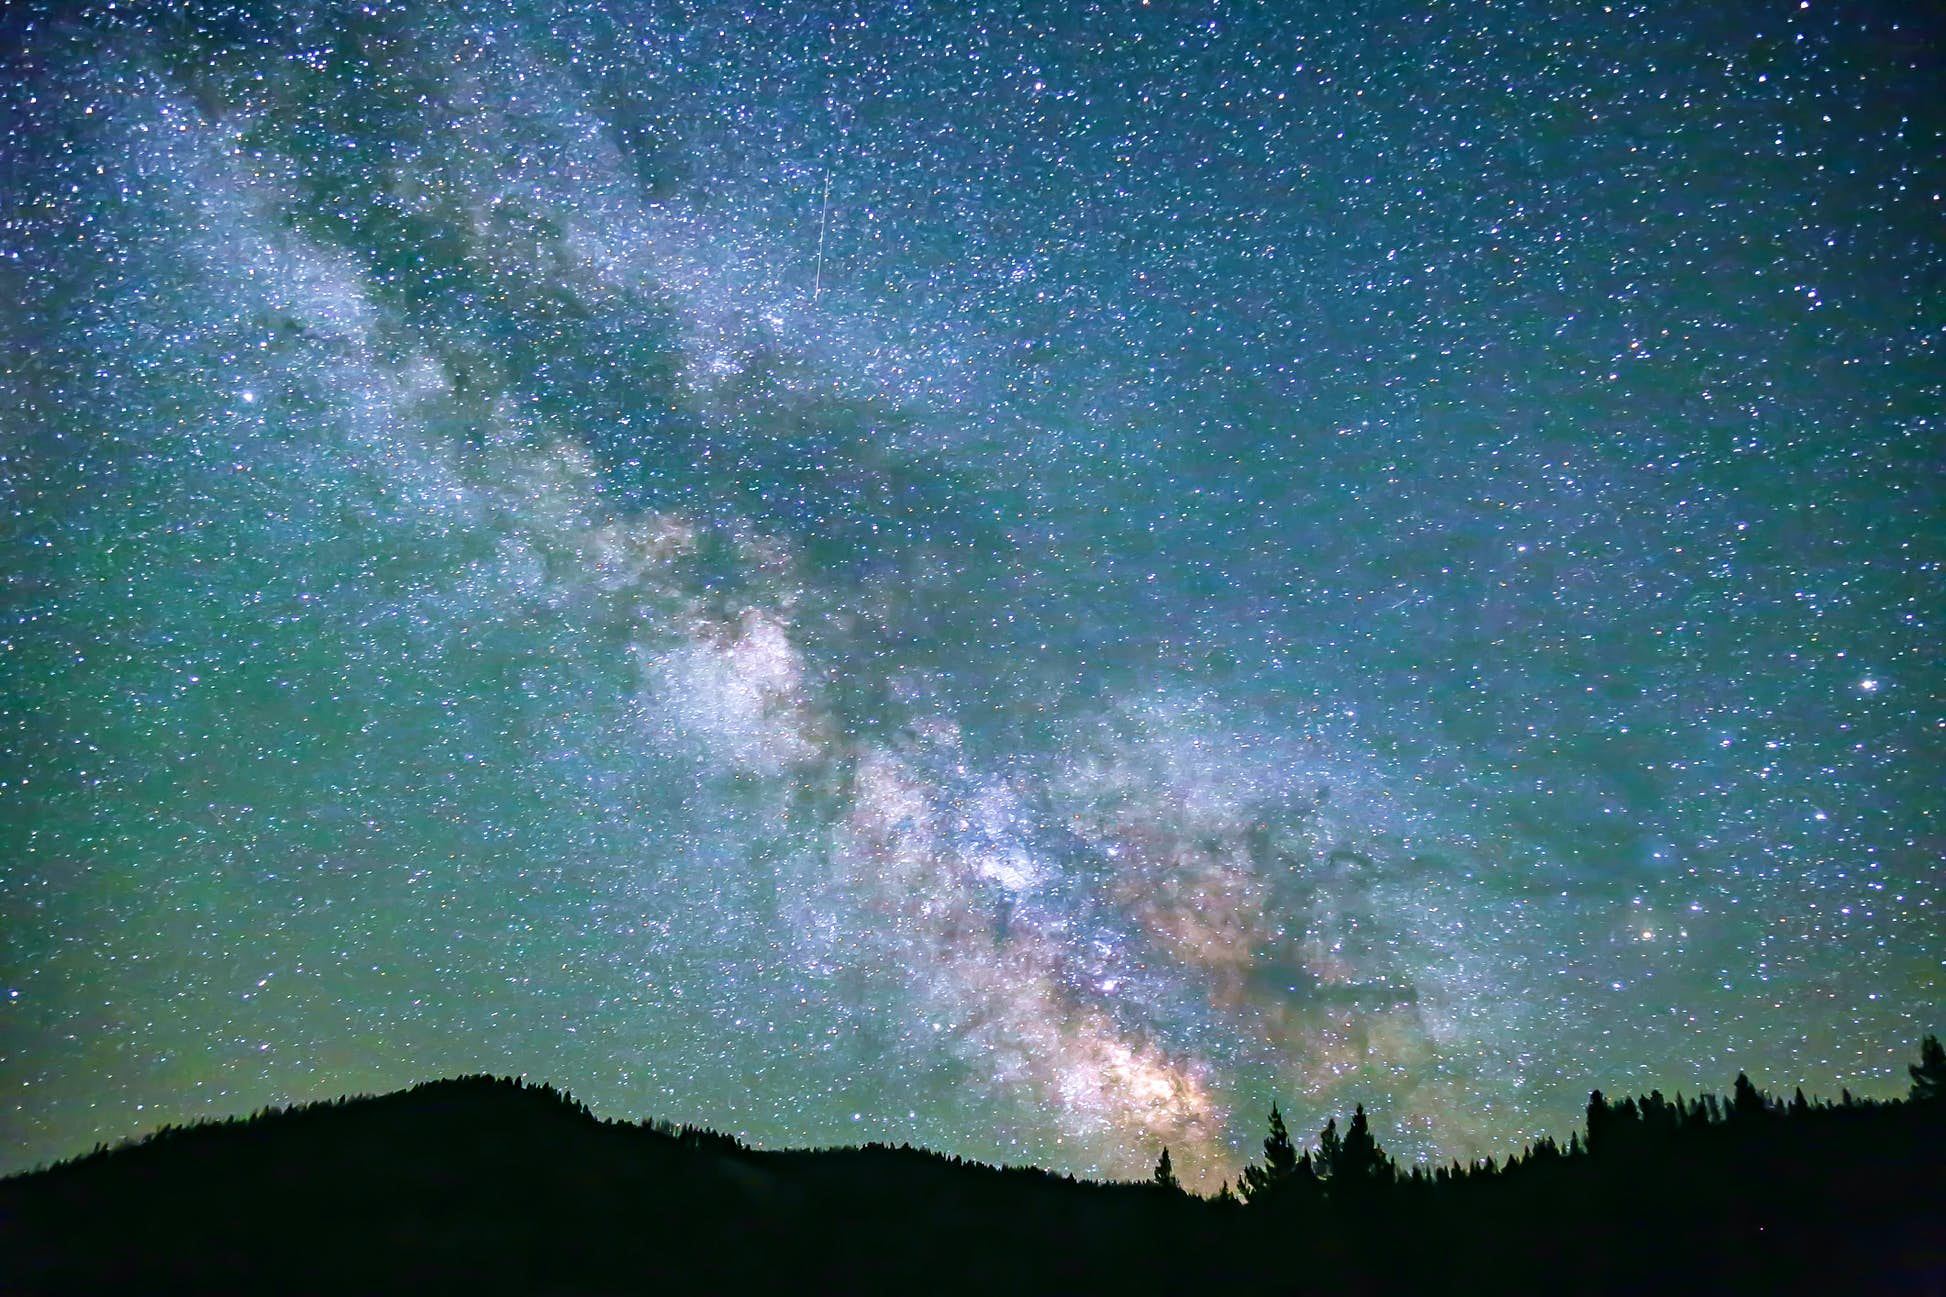 View the Milky Way from Central Idaho Dark Sky Reserve © christiannafzger / Getty Images